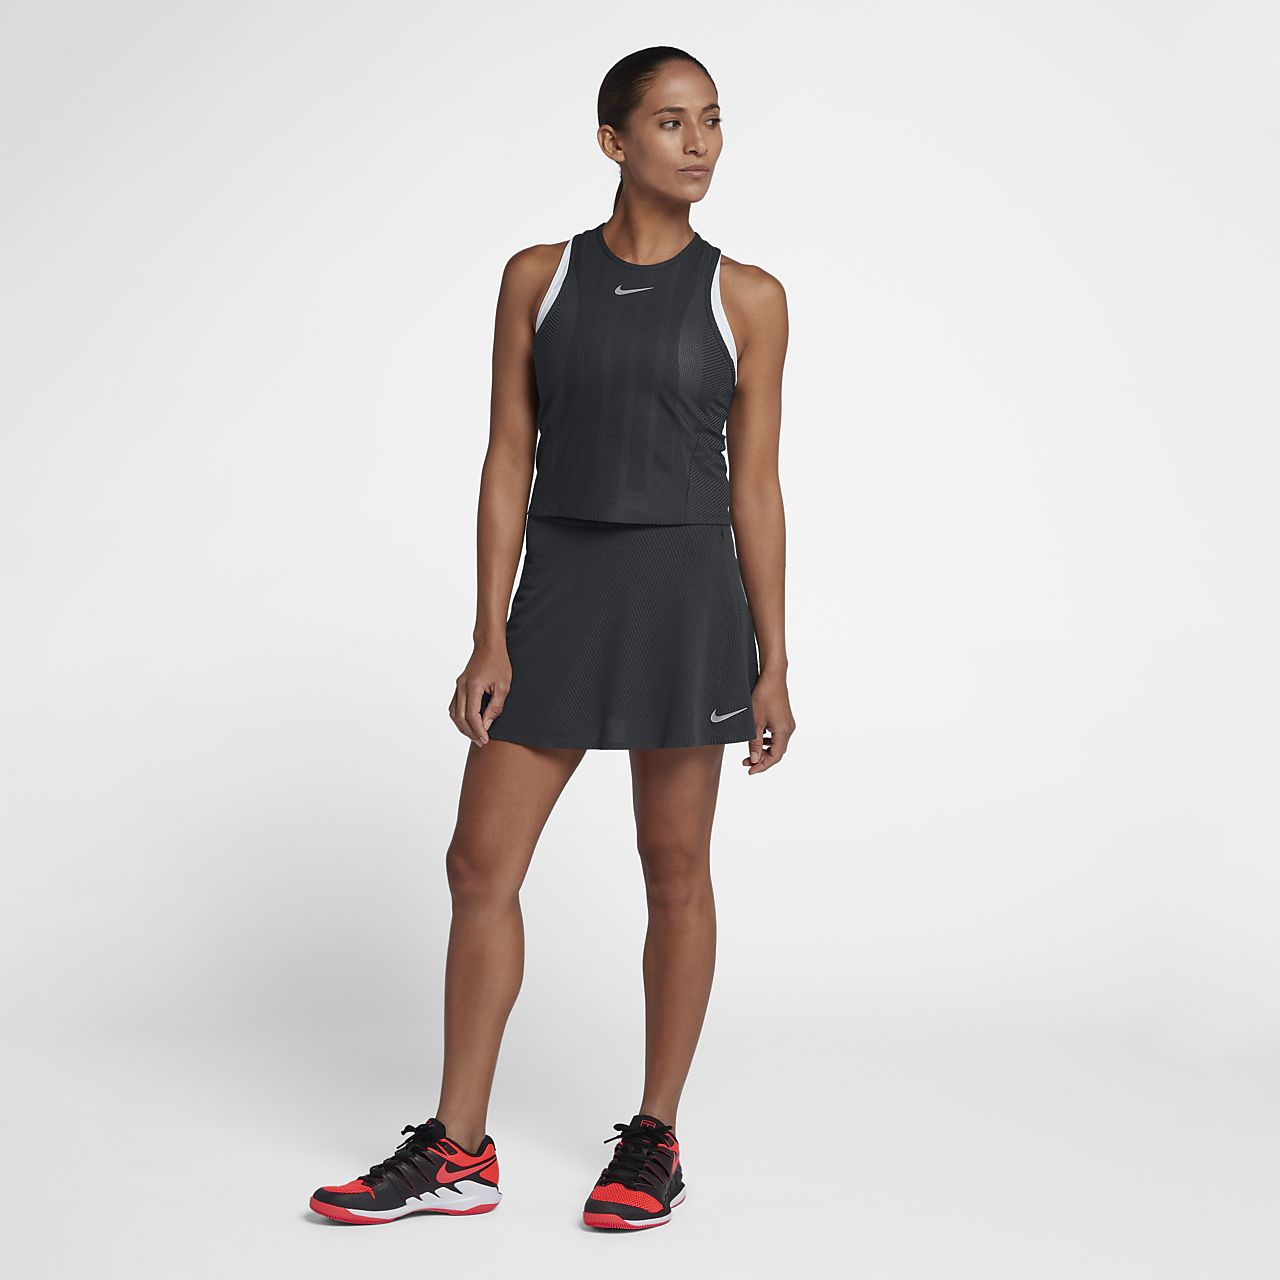 ... NikeCourt Zonal Cooling Women's Tennis Skirt